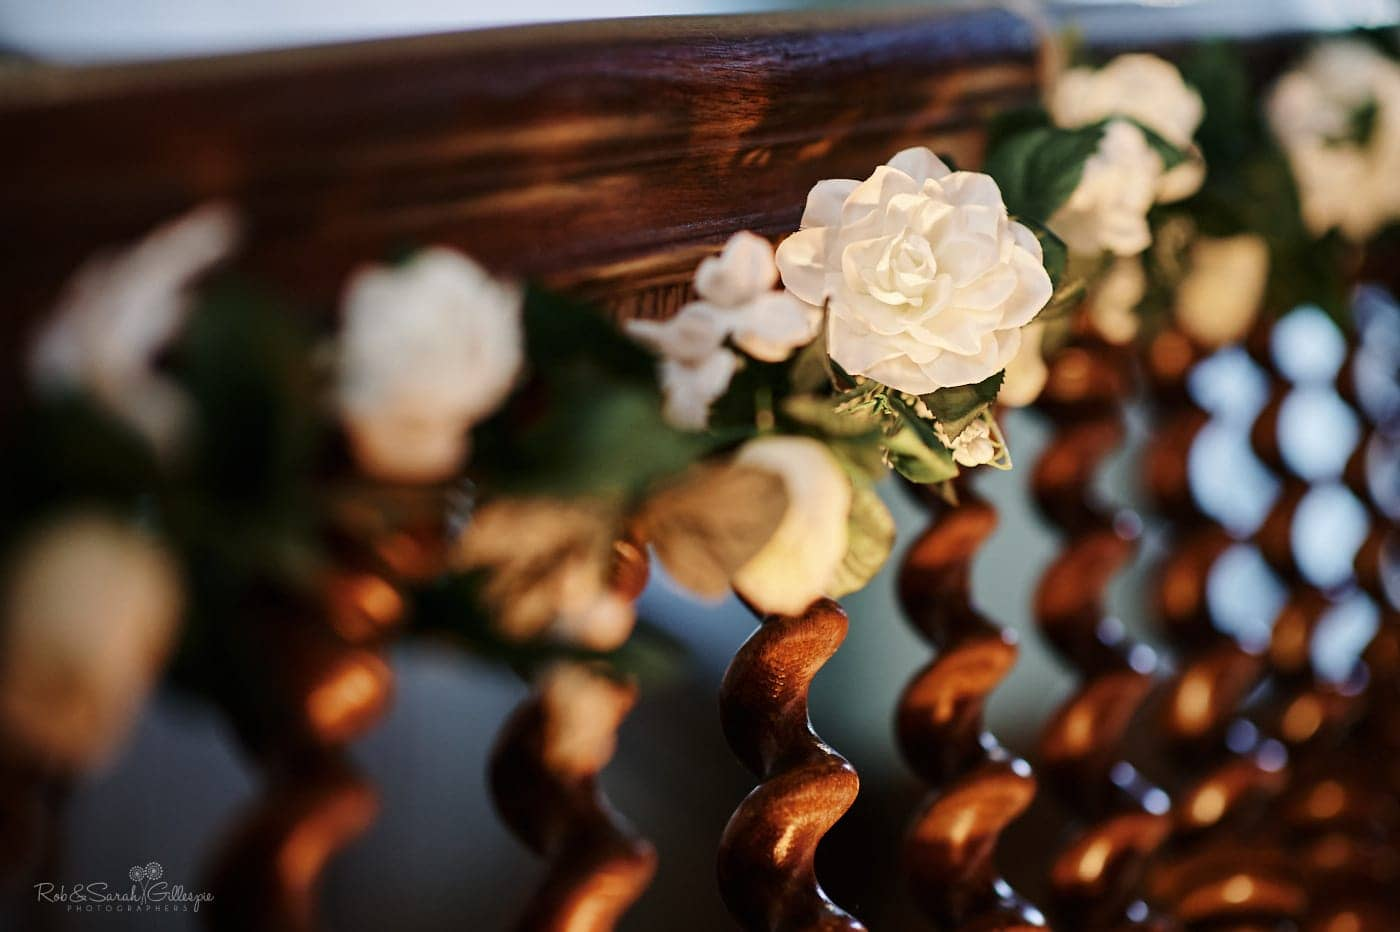 White flowers attached to wooden bannister rail